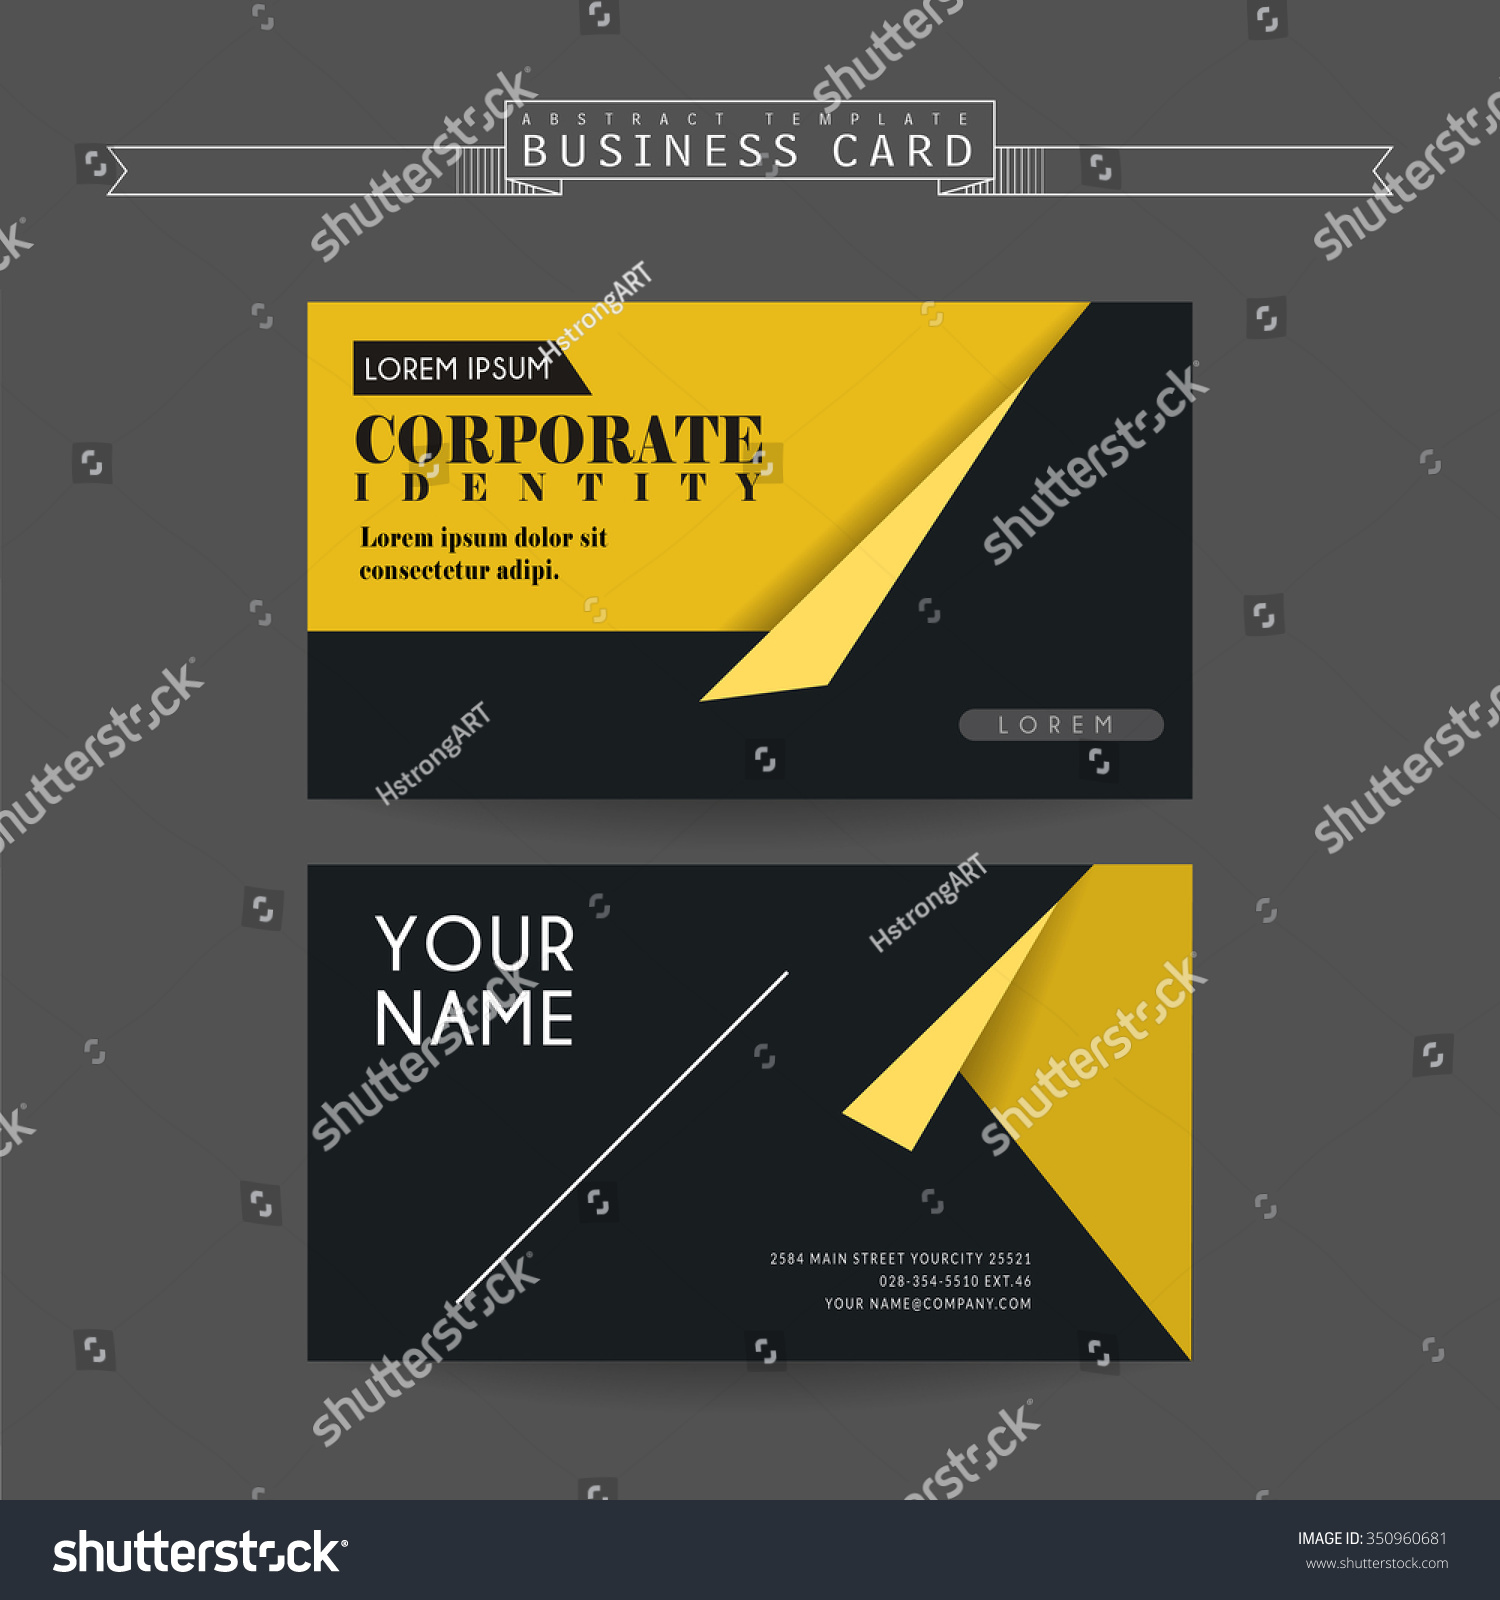 Attractive business card template design origami stock vector attractive business card template design with origami elements jeuxipadfo Gallery